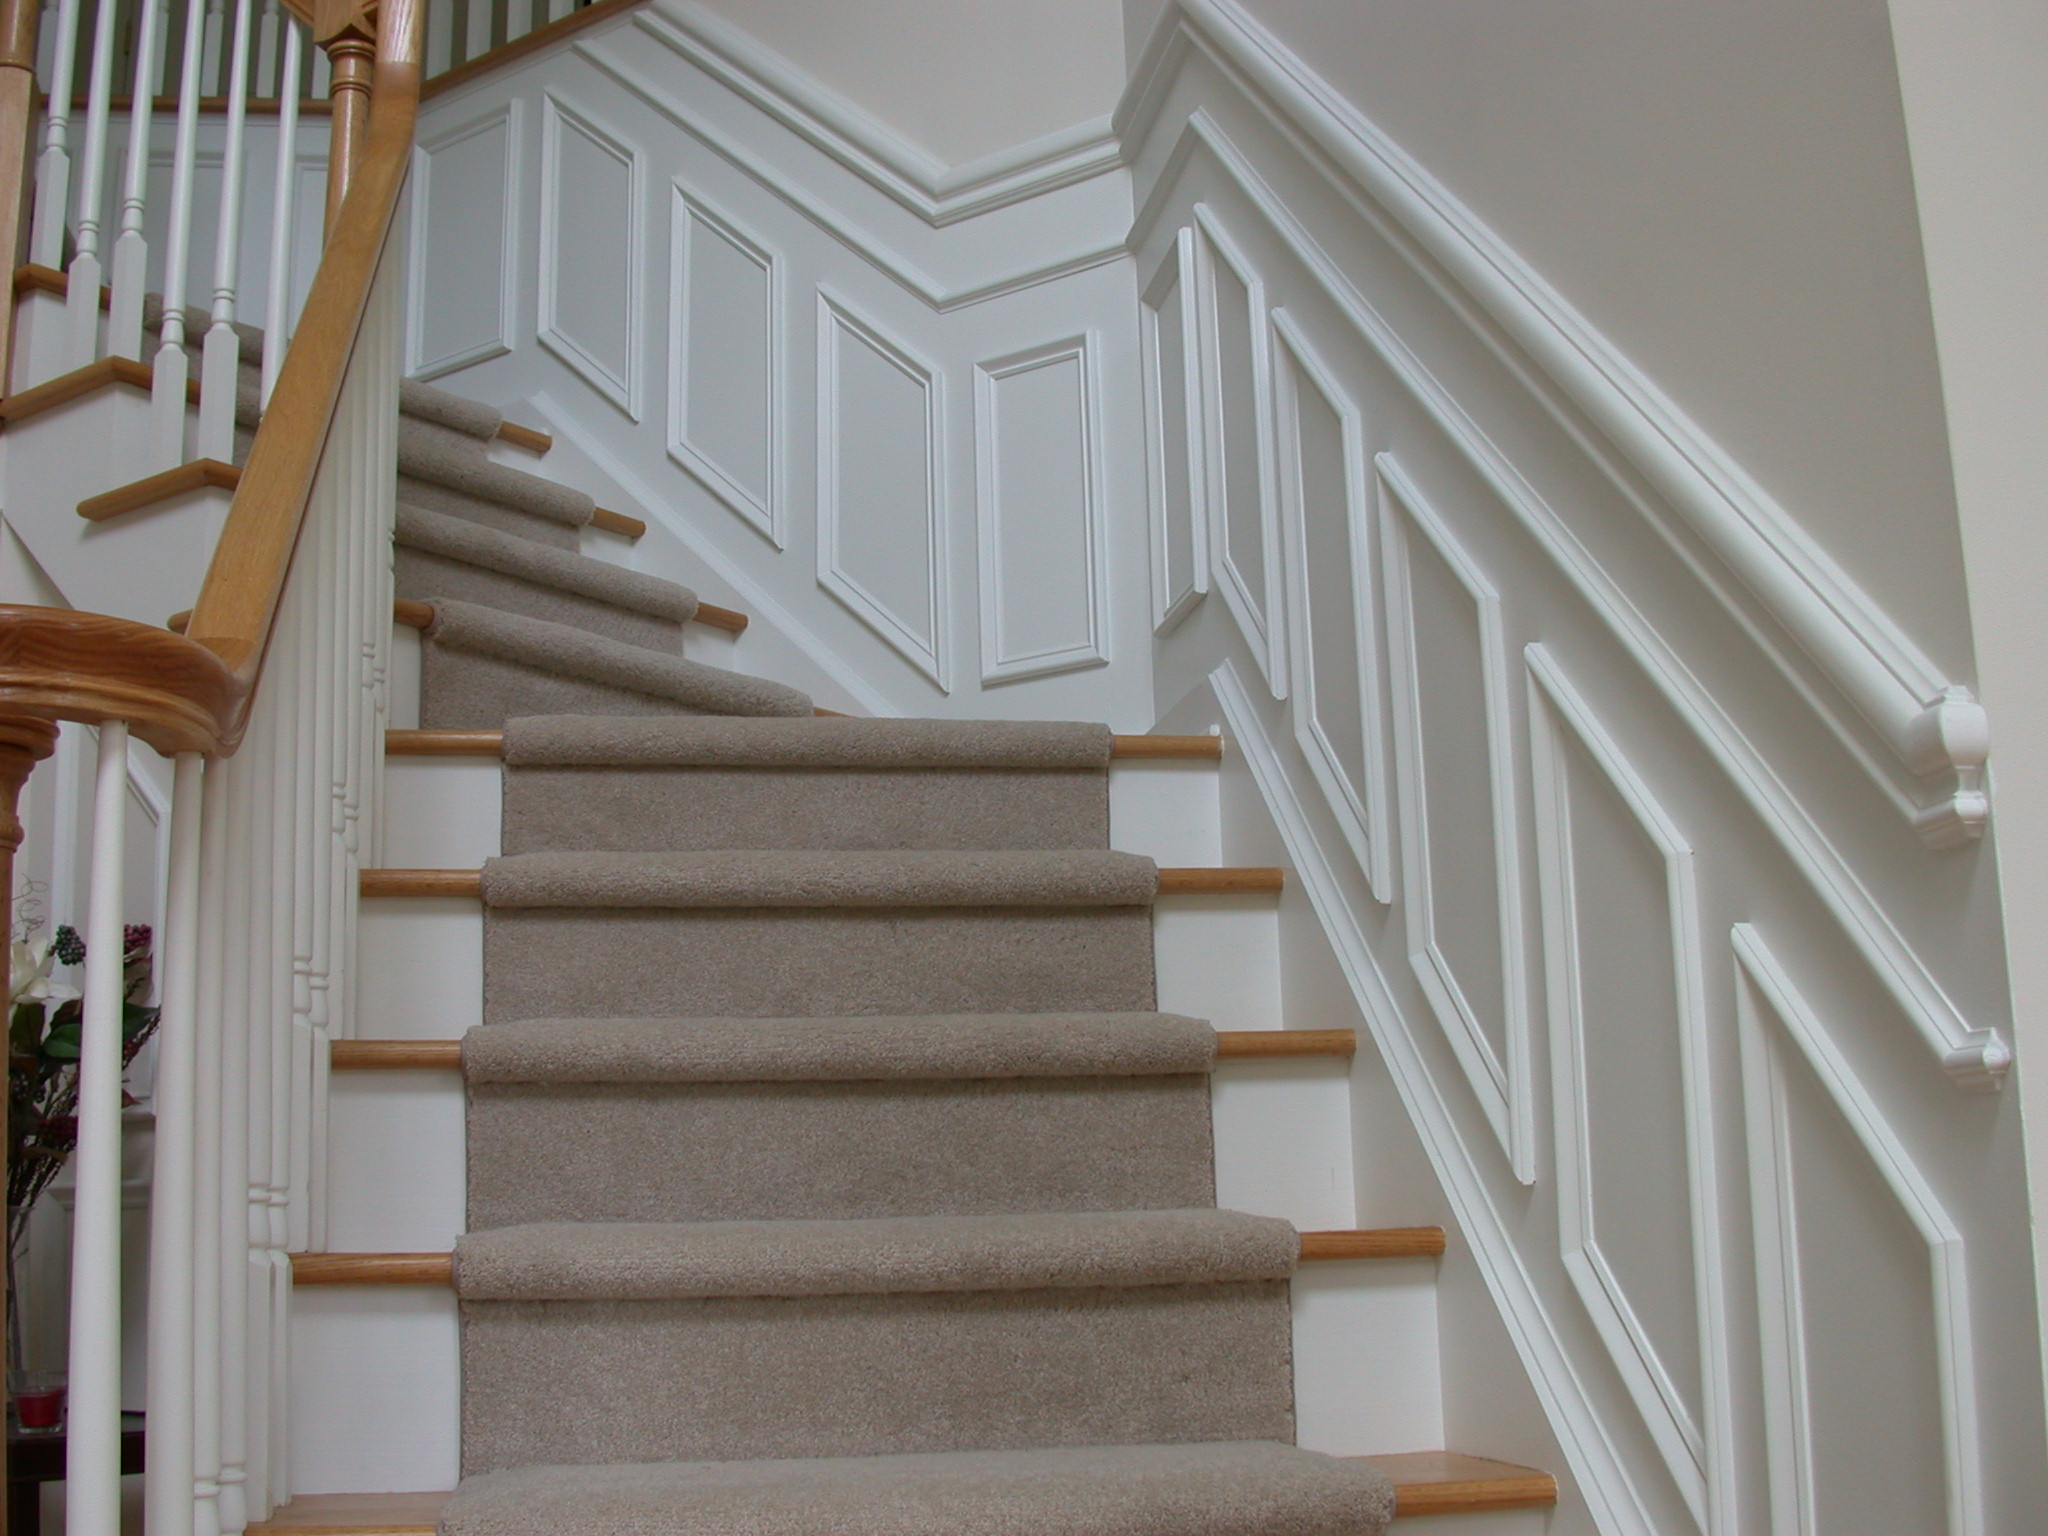 Impressive Wall Trim Molding for Stairs Ideas 2048 x 1536 · 626 kB · jpeg